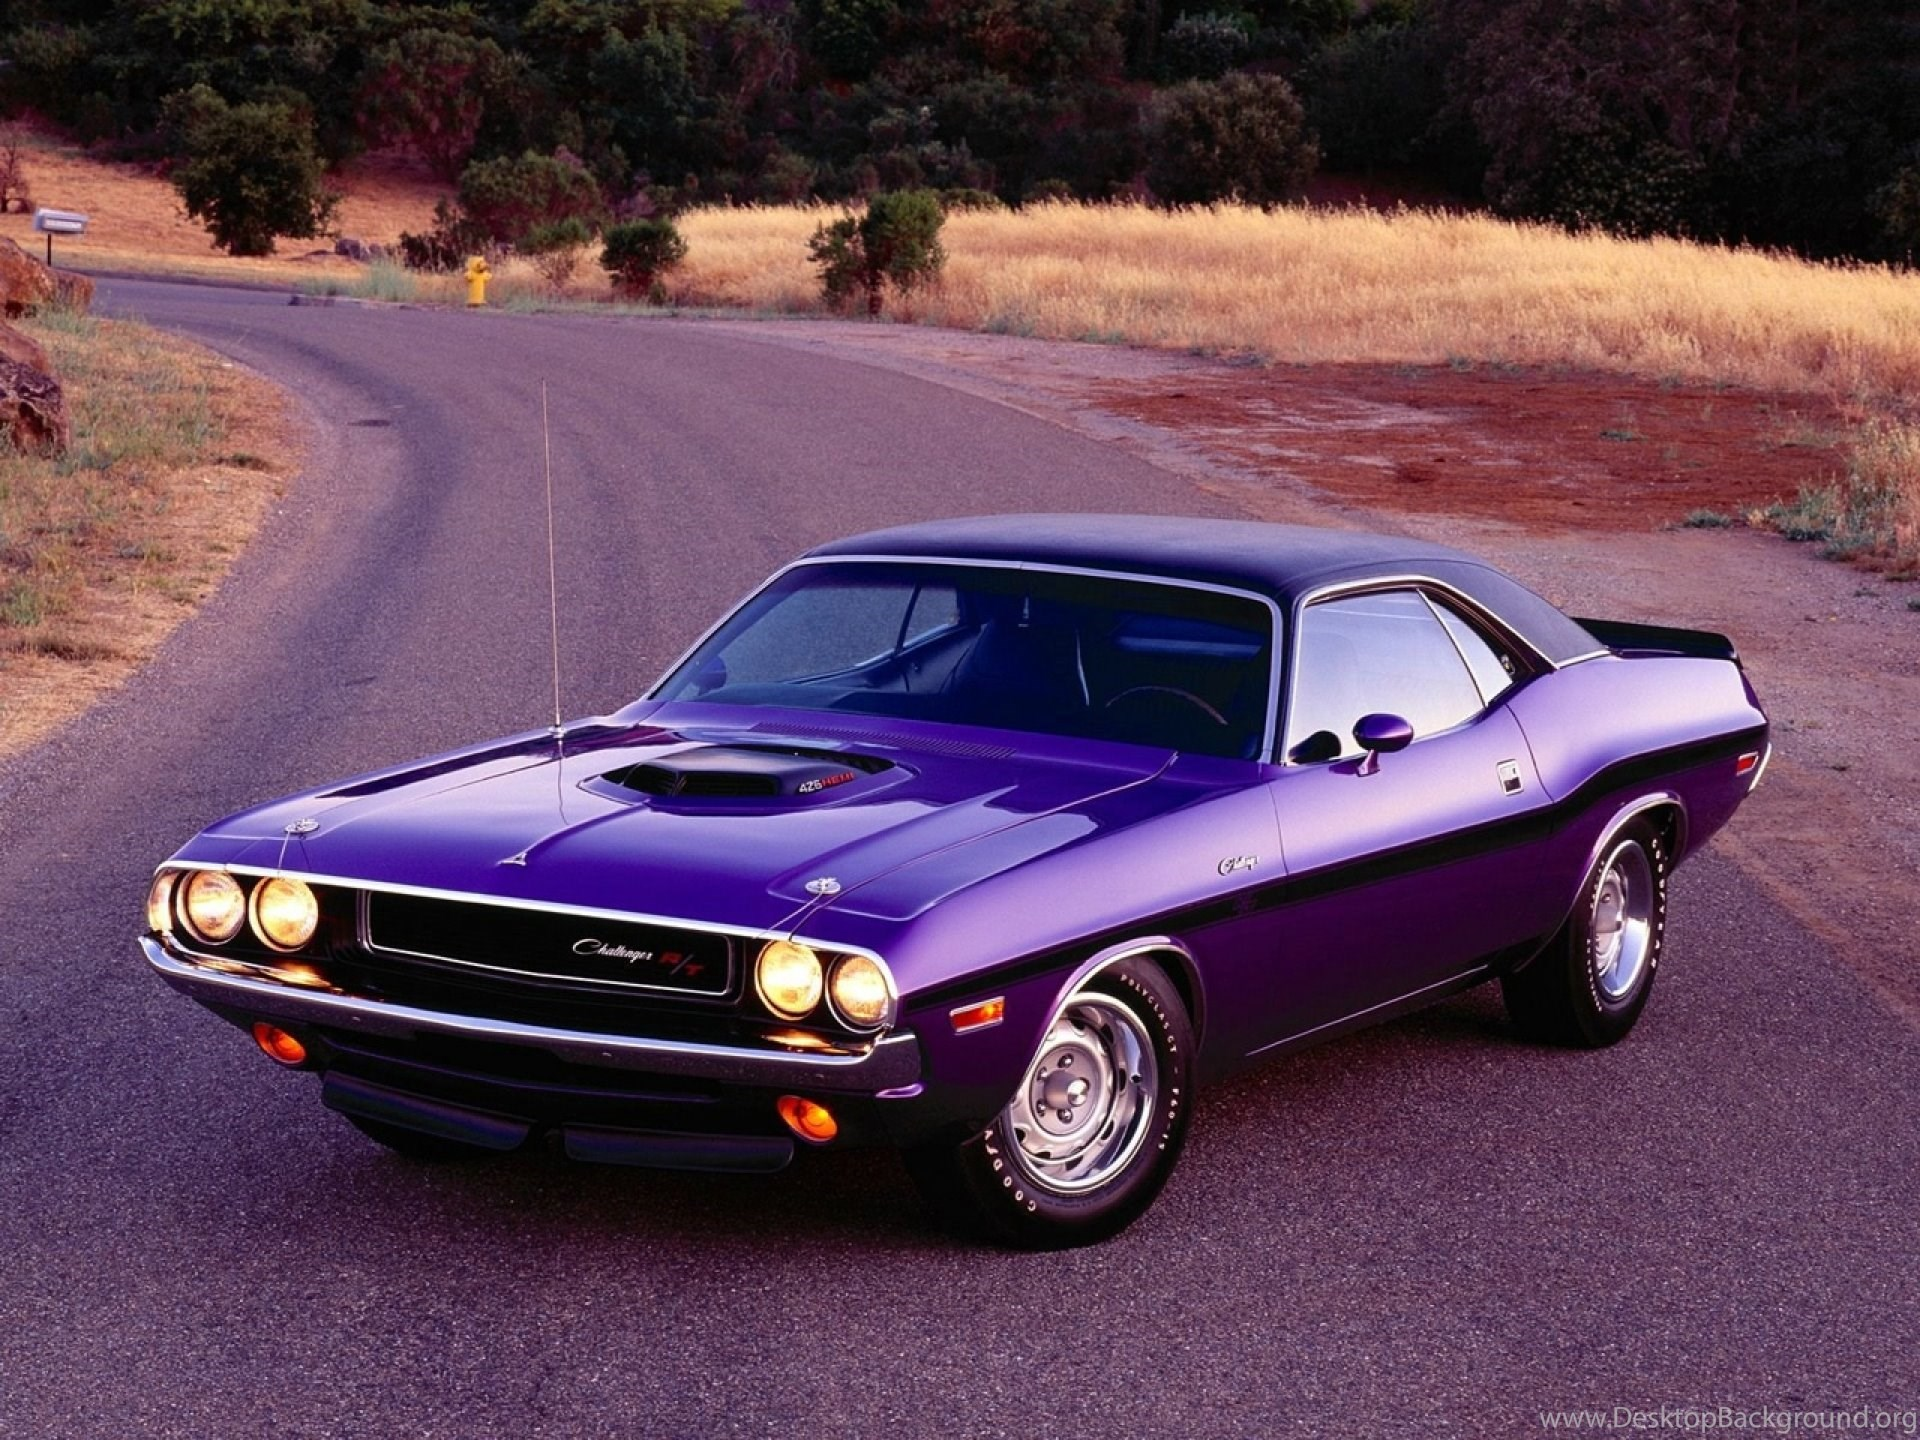 HD American Muscle Cars Wallpapers Desktop Background